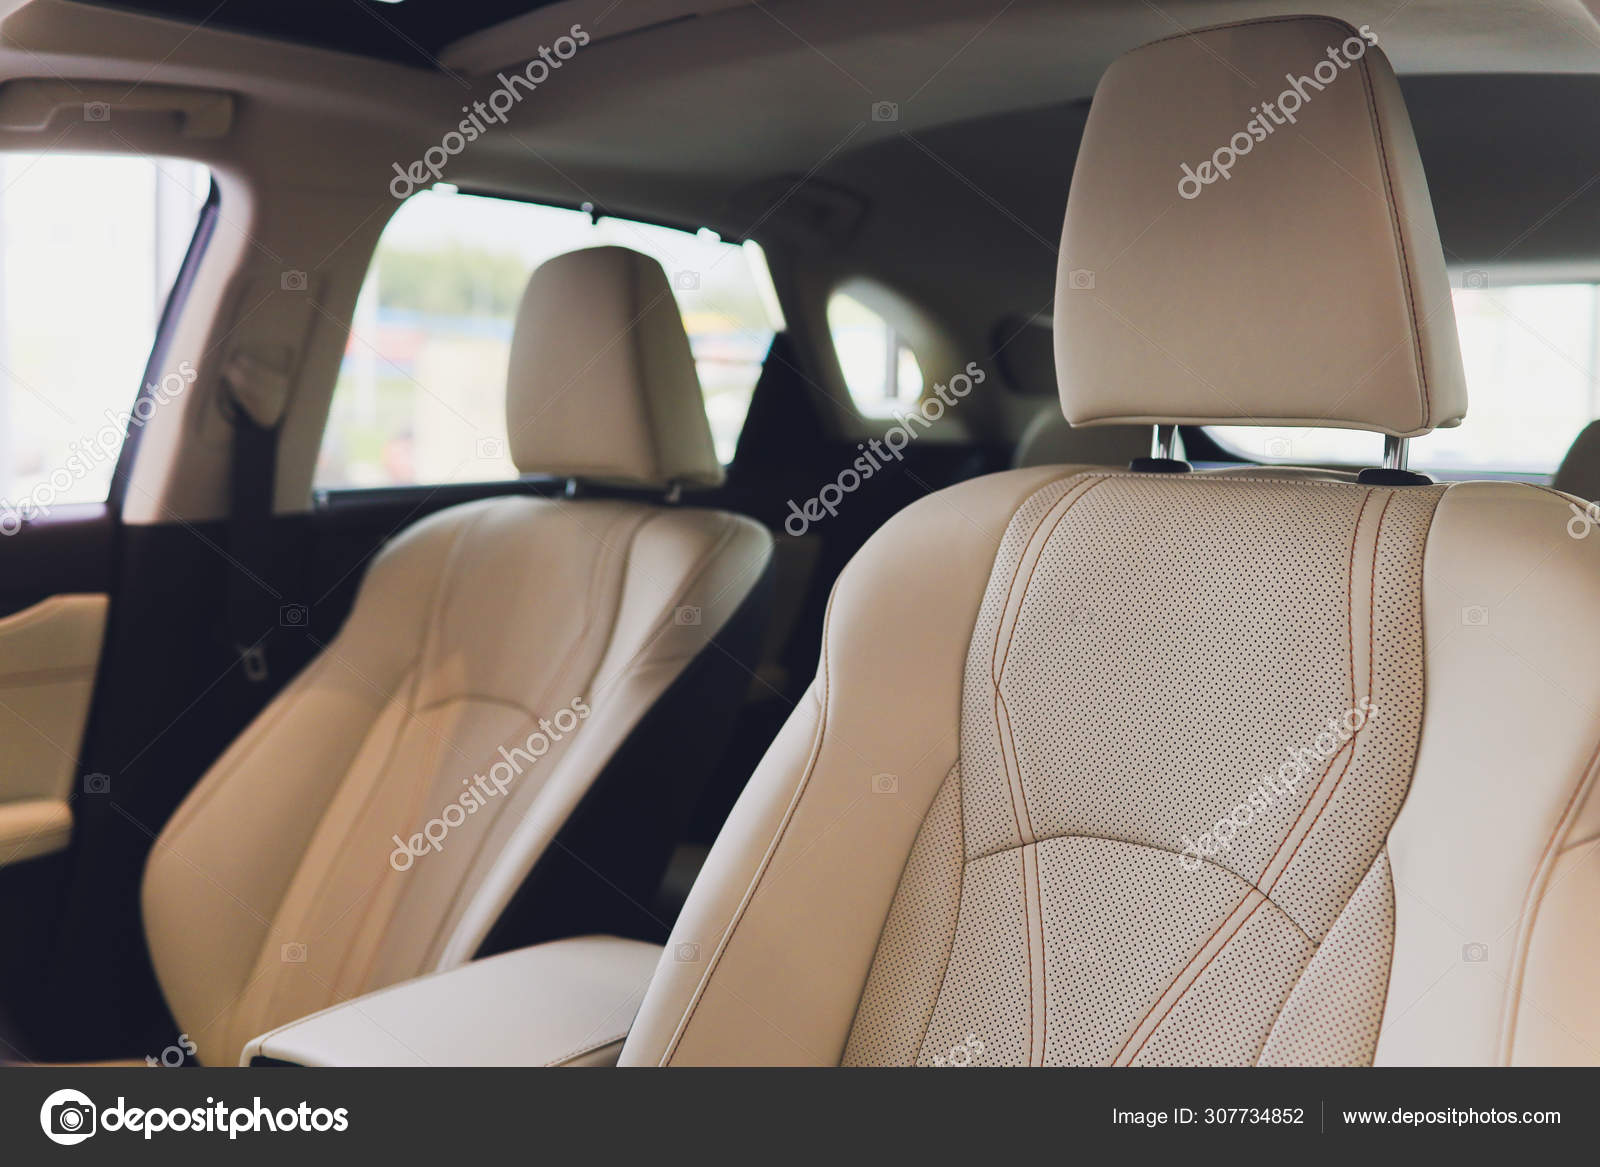 Car Inside Driver Place Interior Of Prestige Modern Car Front Seats With Steering Wheel Dashboard Beige Cockpit With Metal Decoration Panoramic Roof On Isolated White Background Stock Photo C Vershinin Photo 307734852